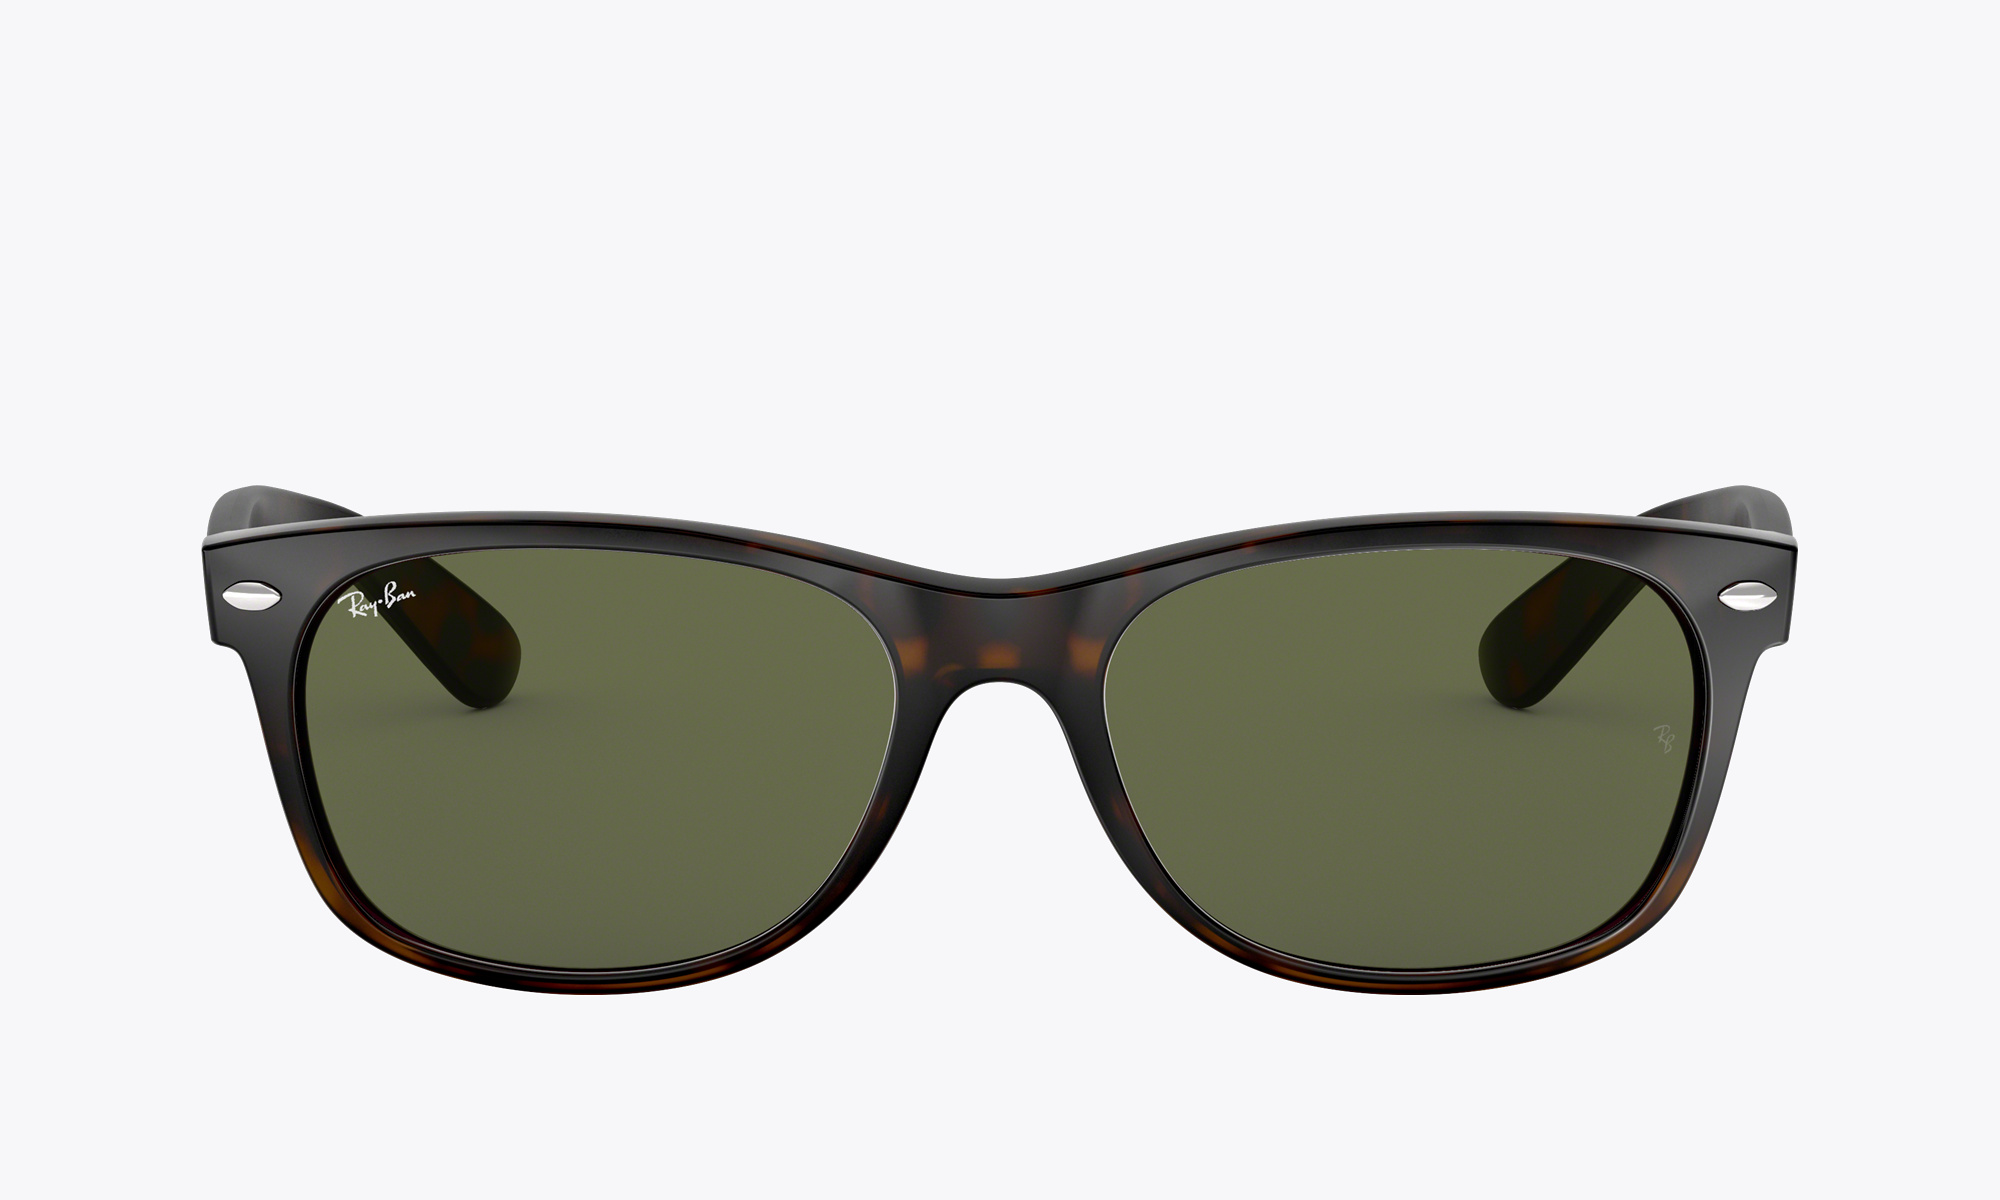 Image of Ray-Ban NEW WAYFARER color Tortoise